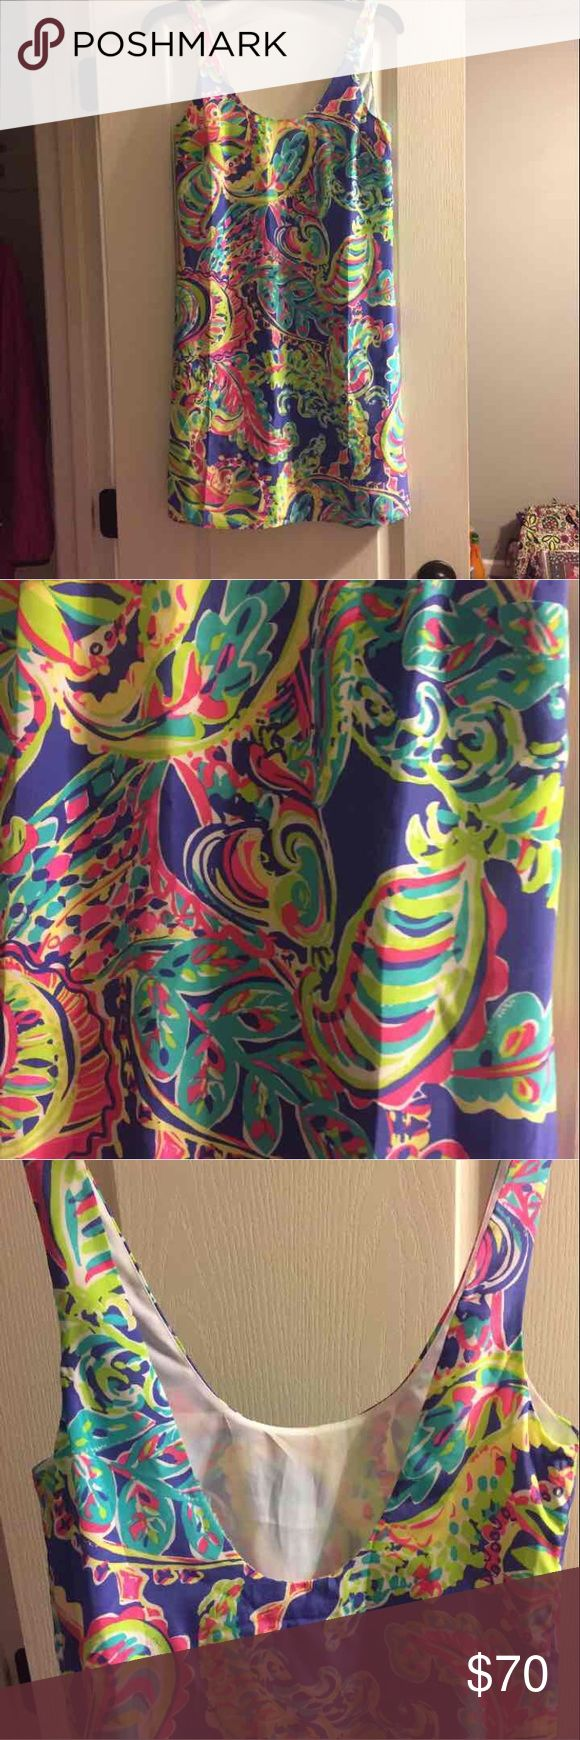 🎈SALE🎈Lilly Pulitzer Dress New without tags. Never worn. Lilly Pulitzer Dresses